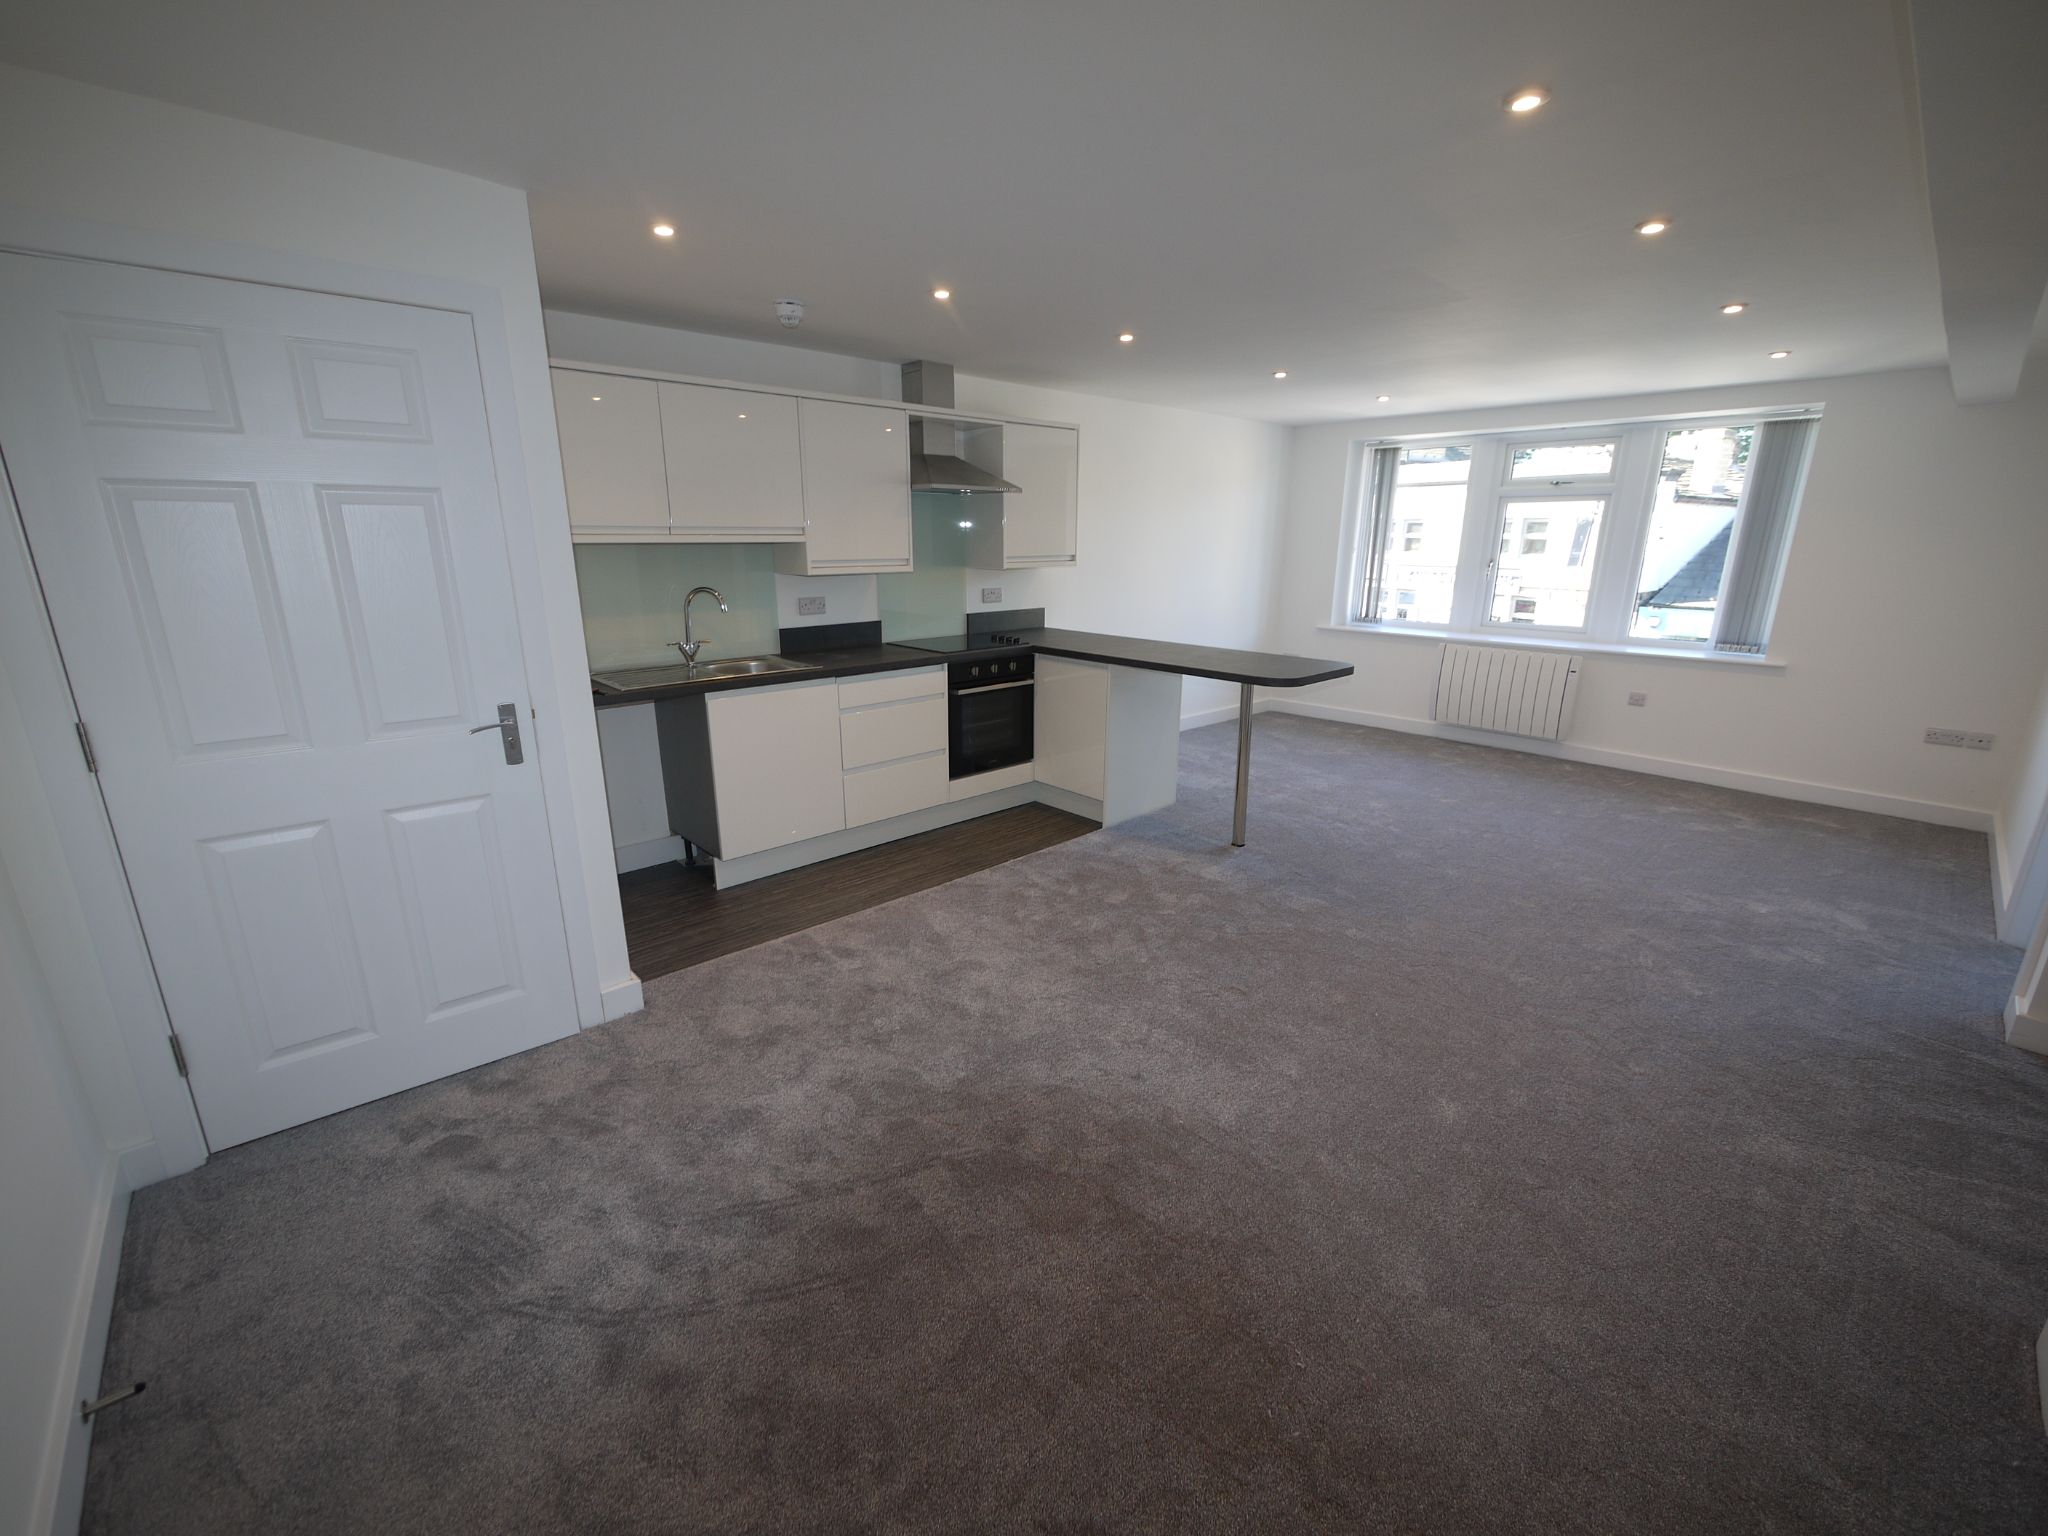 2 bedroom apartment flat/apartment To Let in Halifax - Photograph 1.